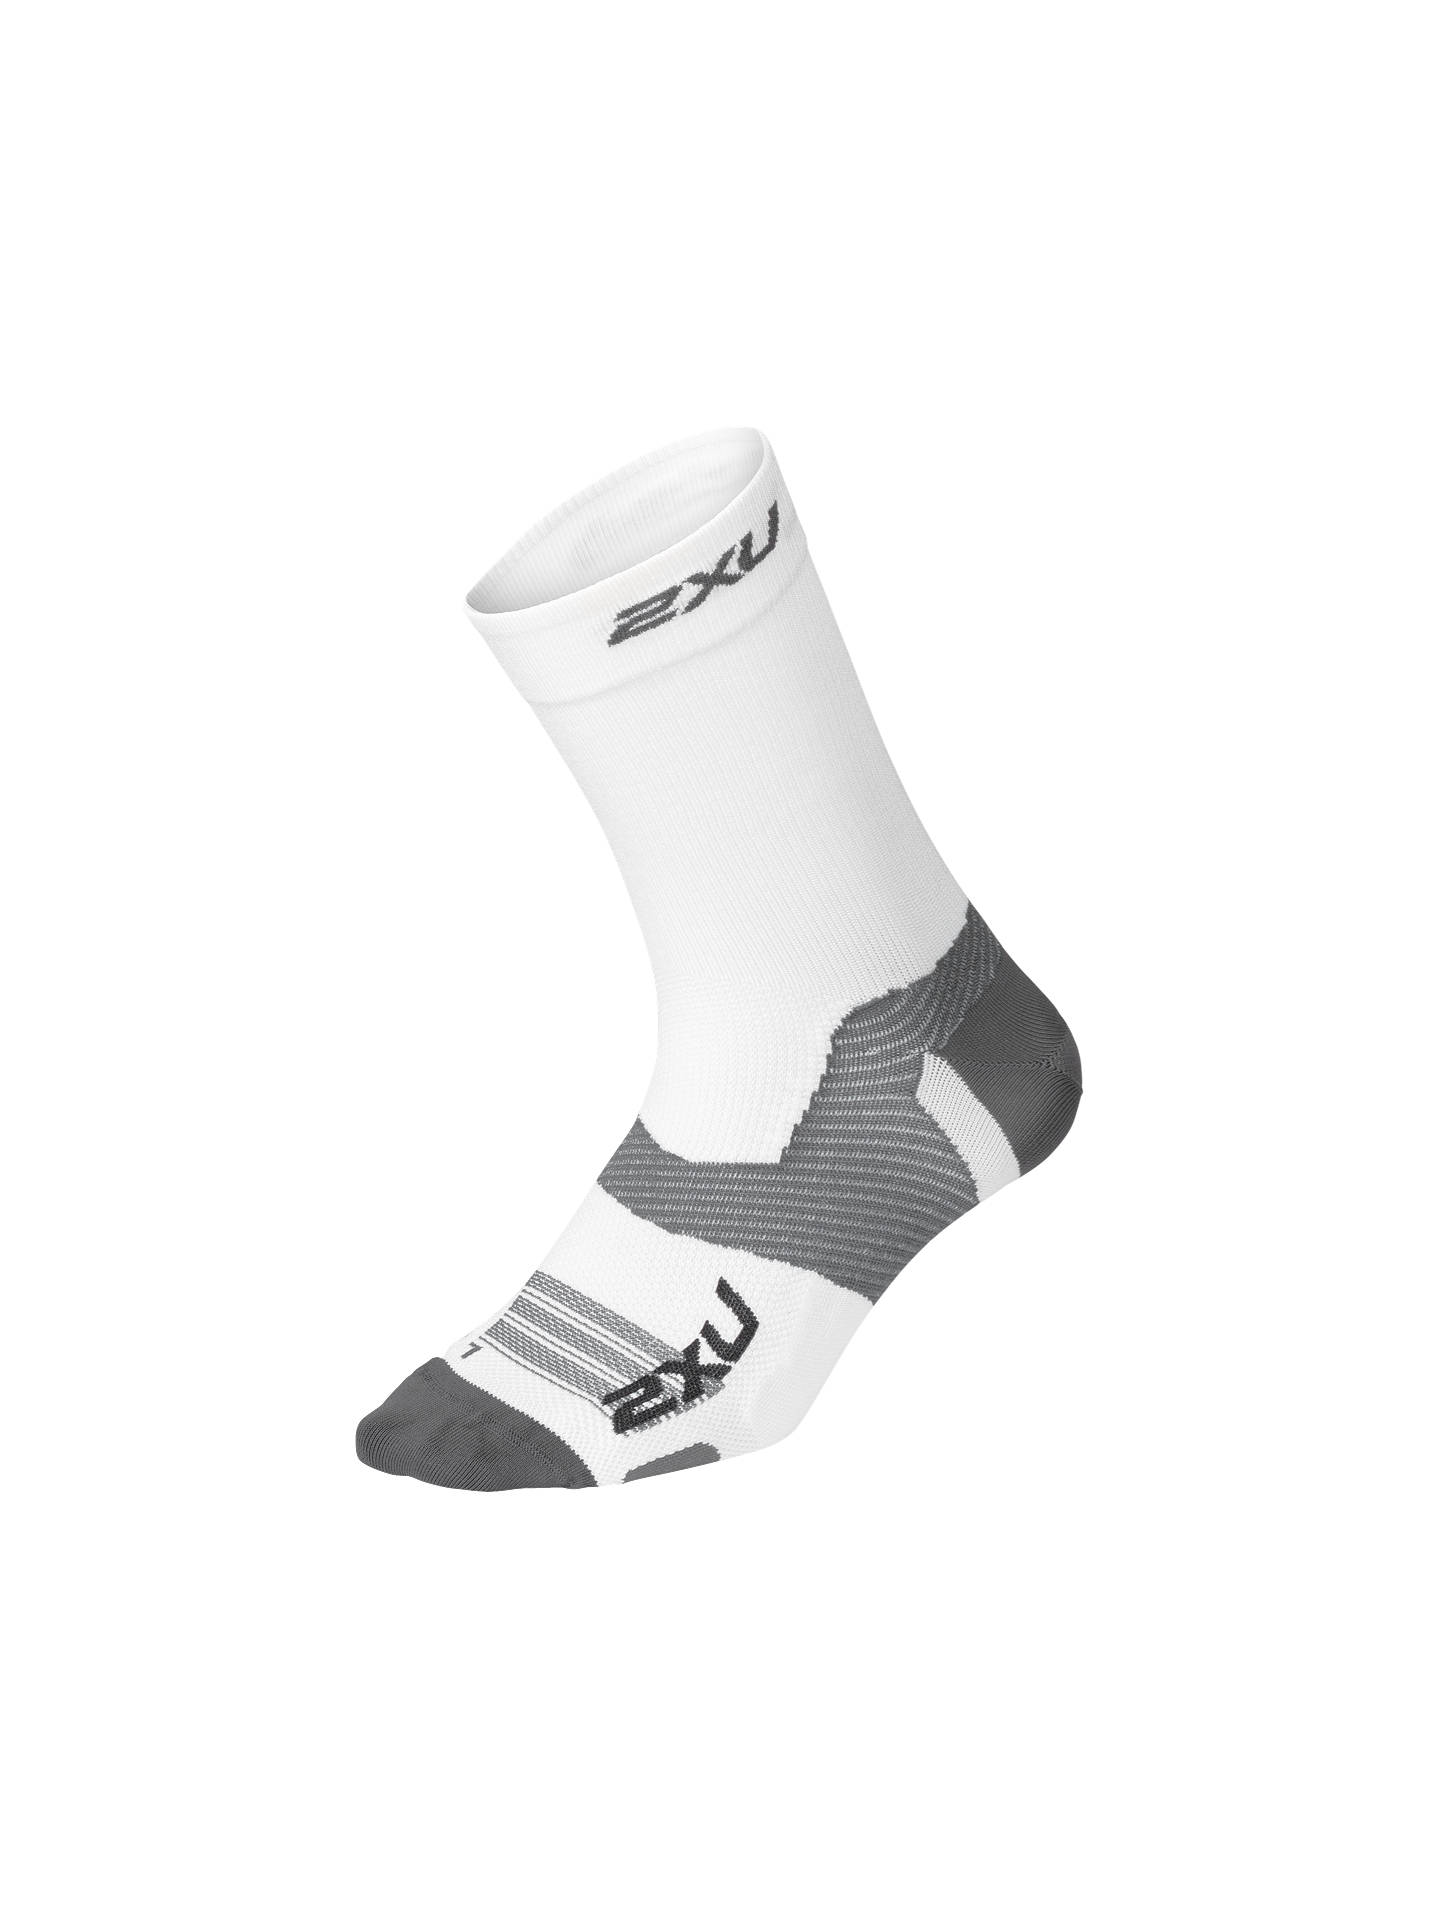 Buy2XU Vectr Compression Socks, White/Grey, S Online at johnlewis.com